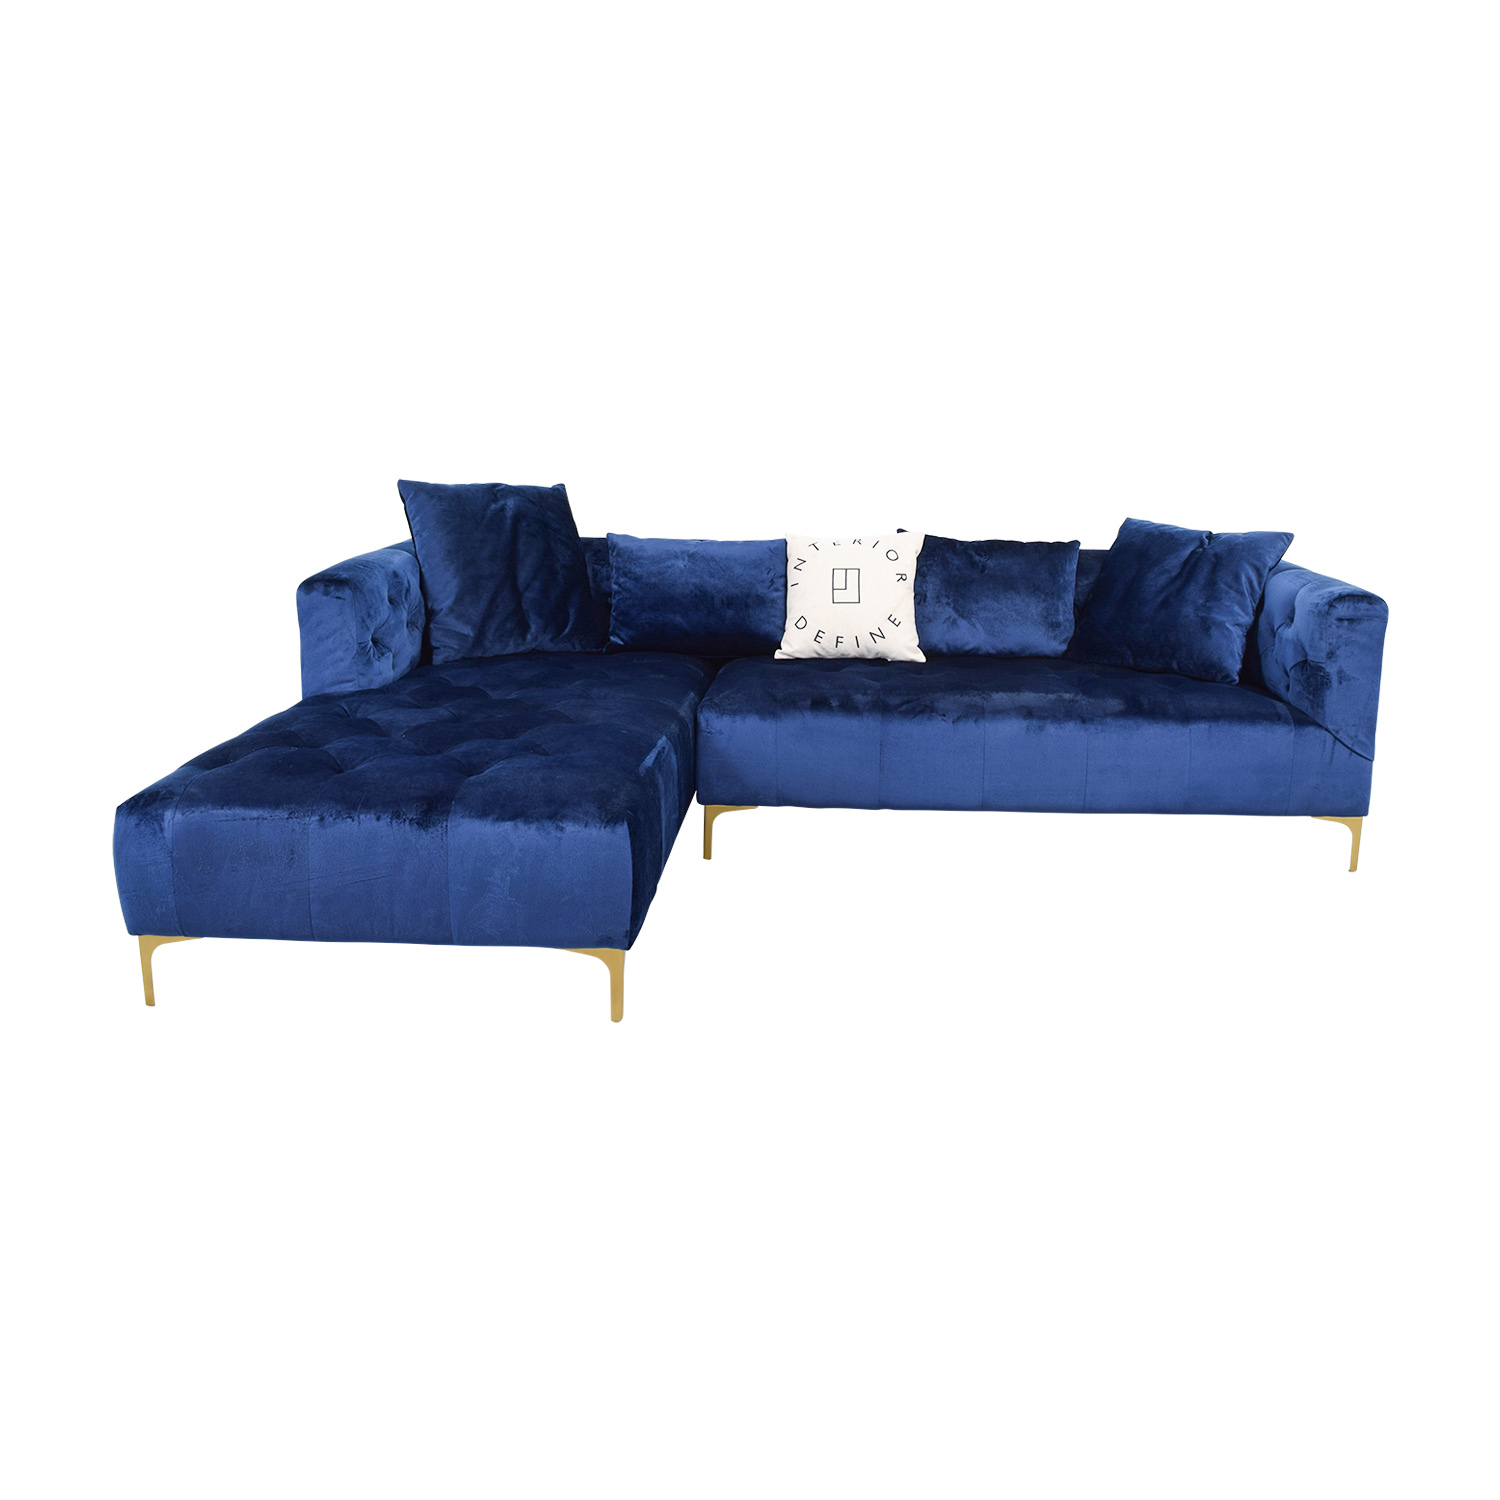 Chesterfield Sectional Sofa Kaiyo Furniture Reborn